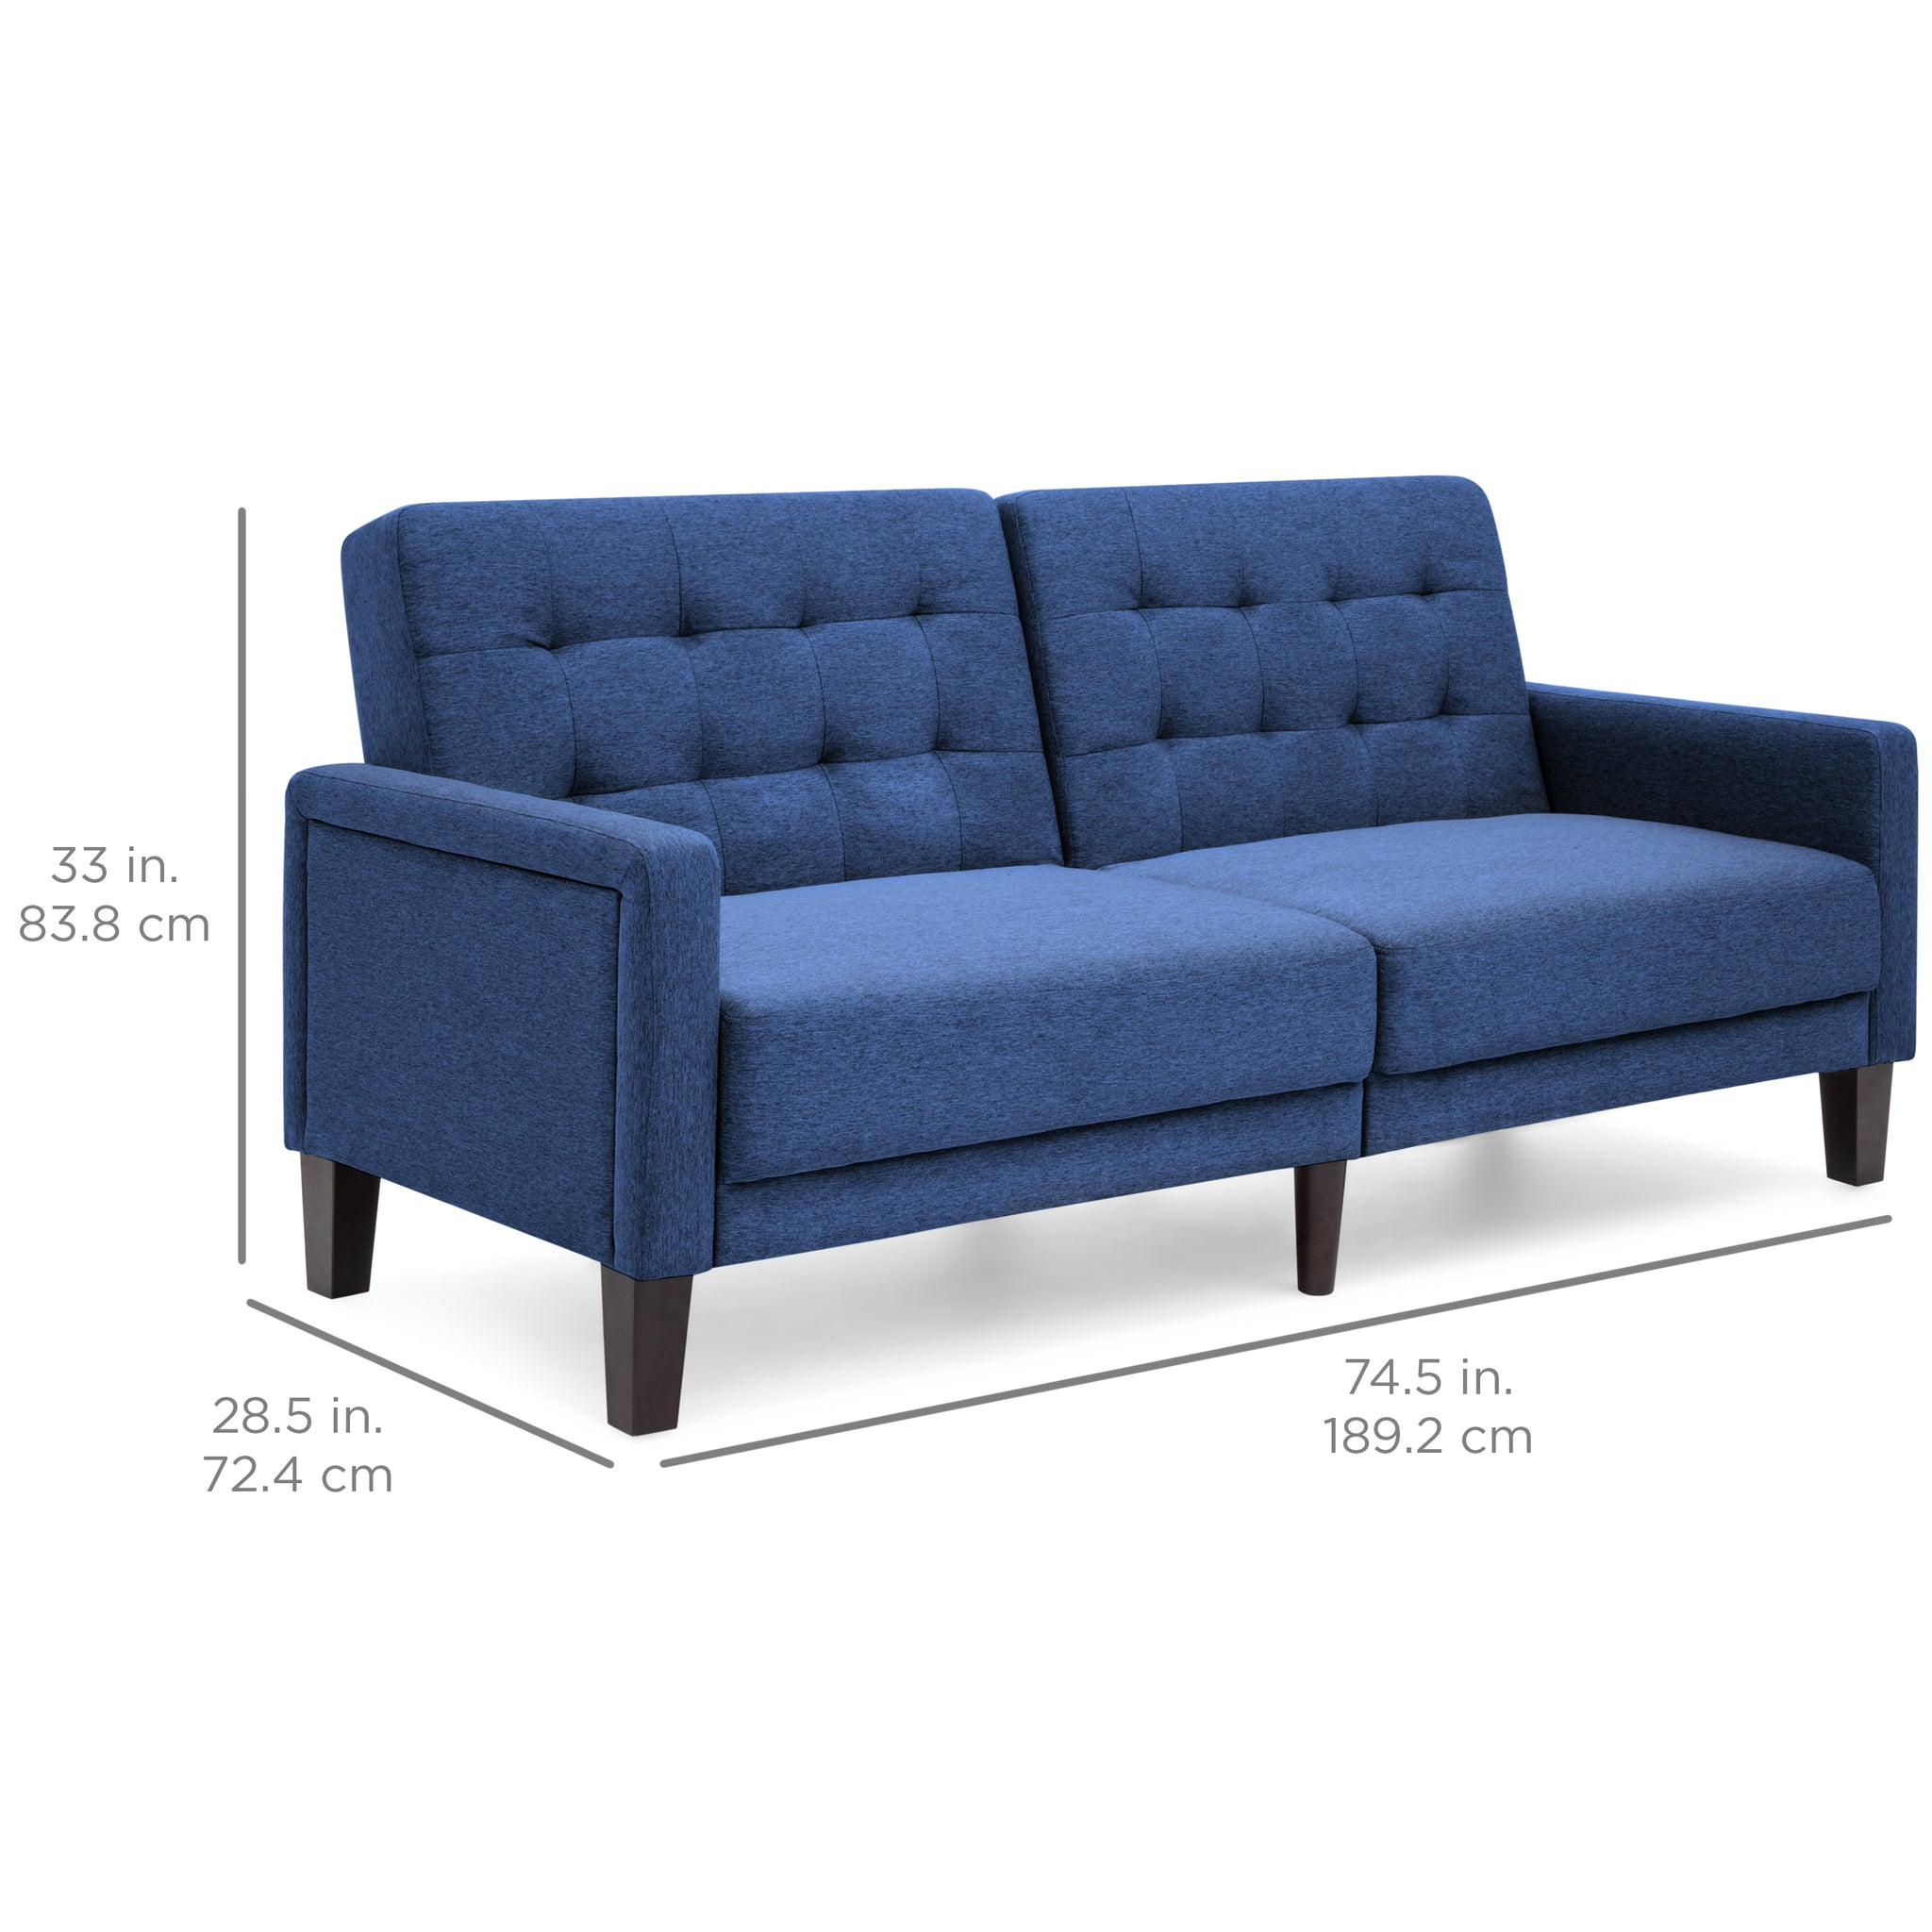 convertible linen upholstered split back futon   navy convertible linen upholstered split back futon   navy  u2013 best      rh   bestchoiceproducts